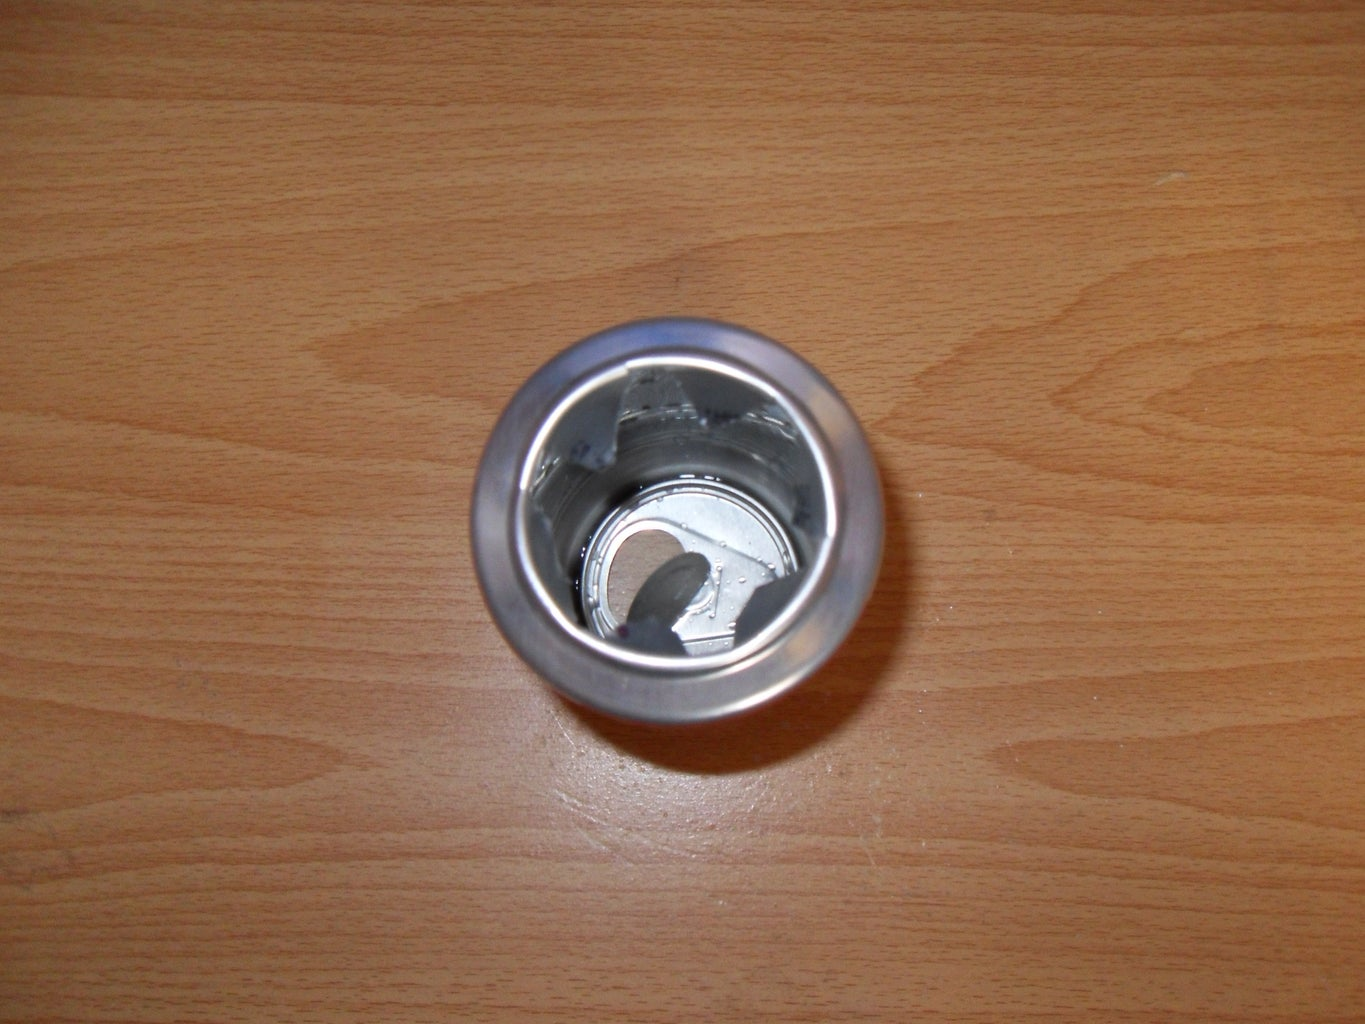 Opening Up the Can